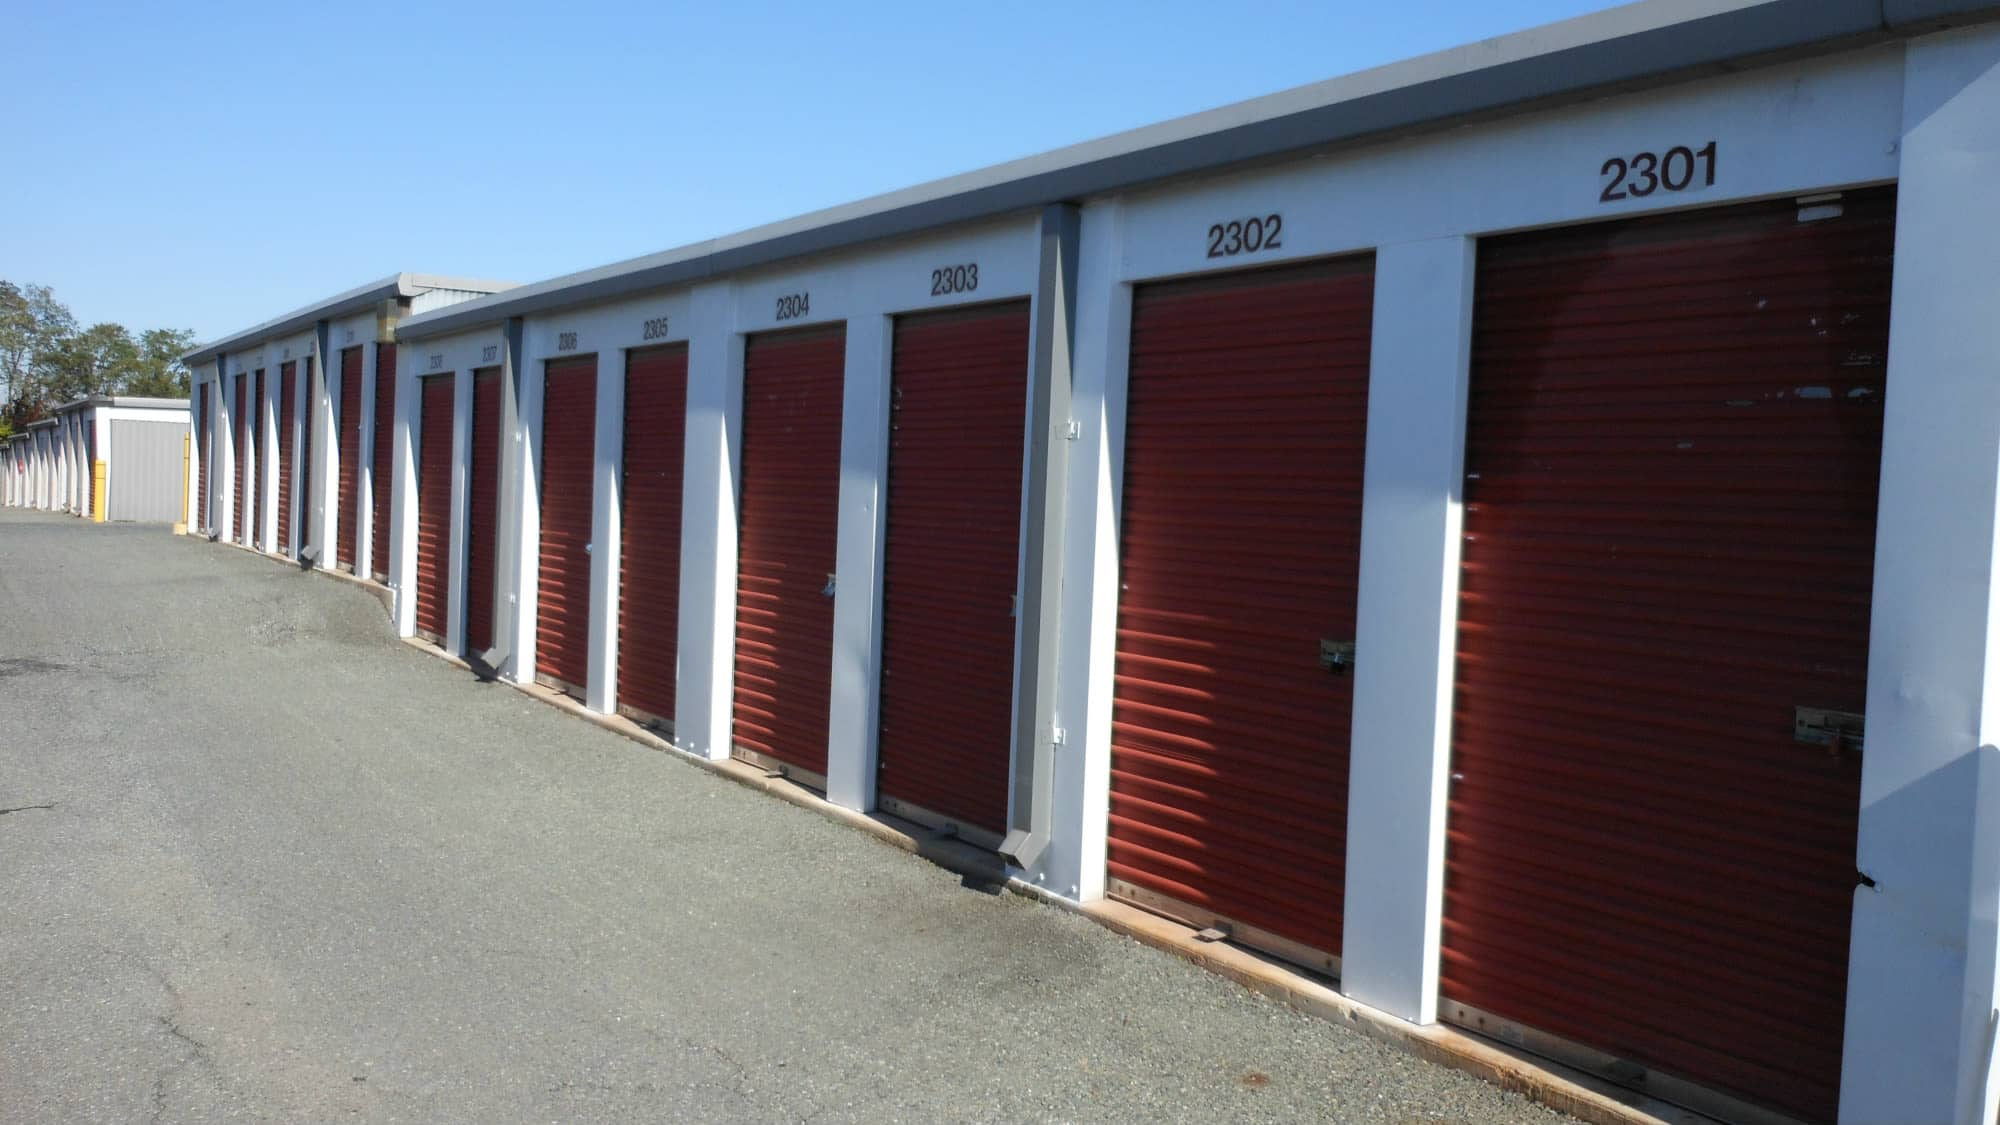 Ground-level units at Self Storage Plus in Alexandria, Virginia